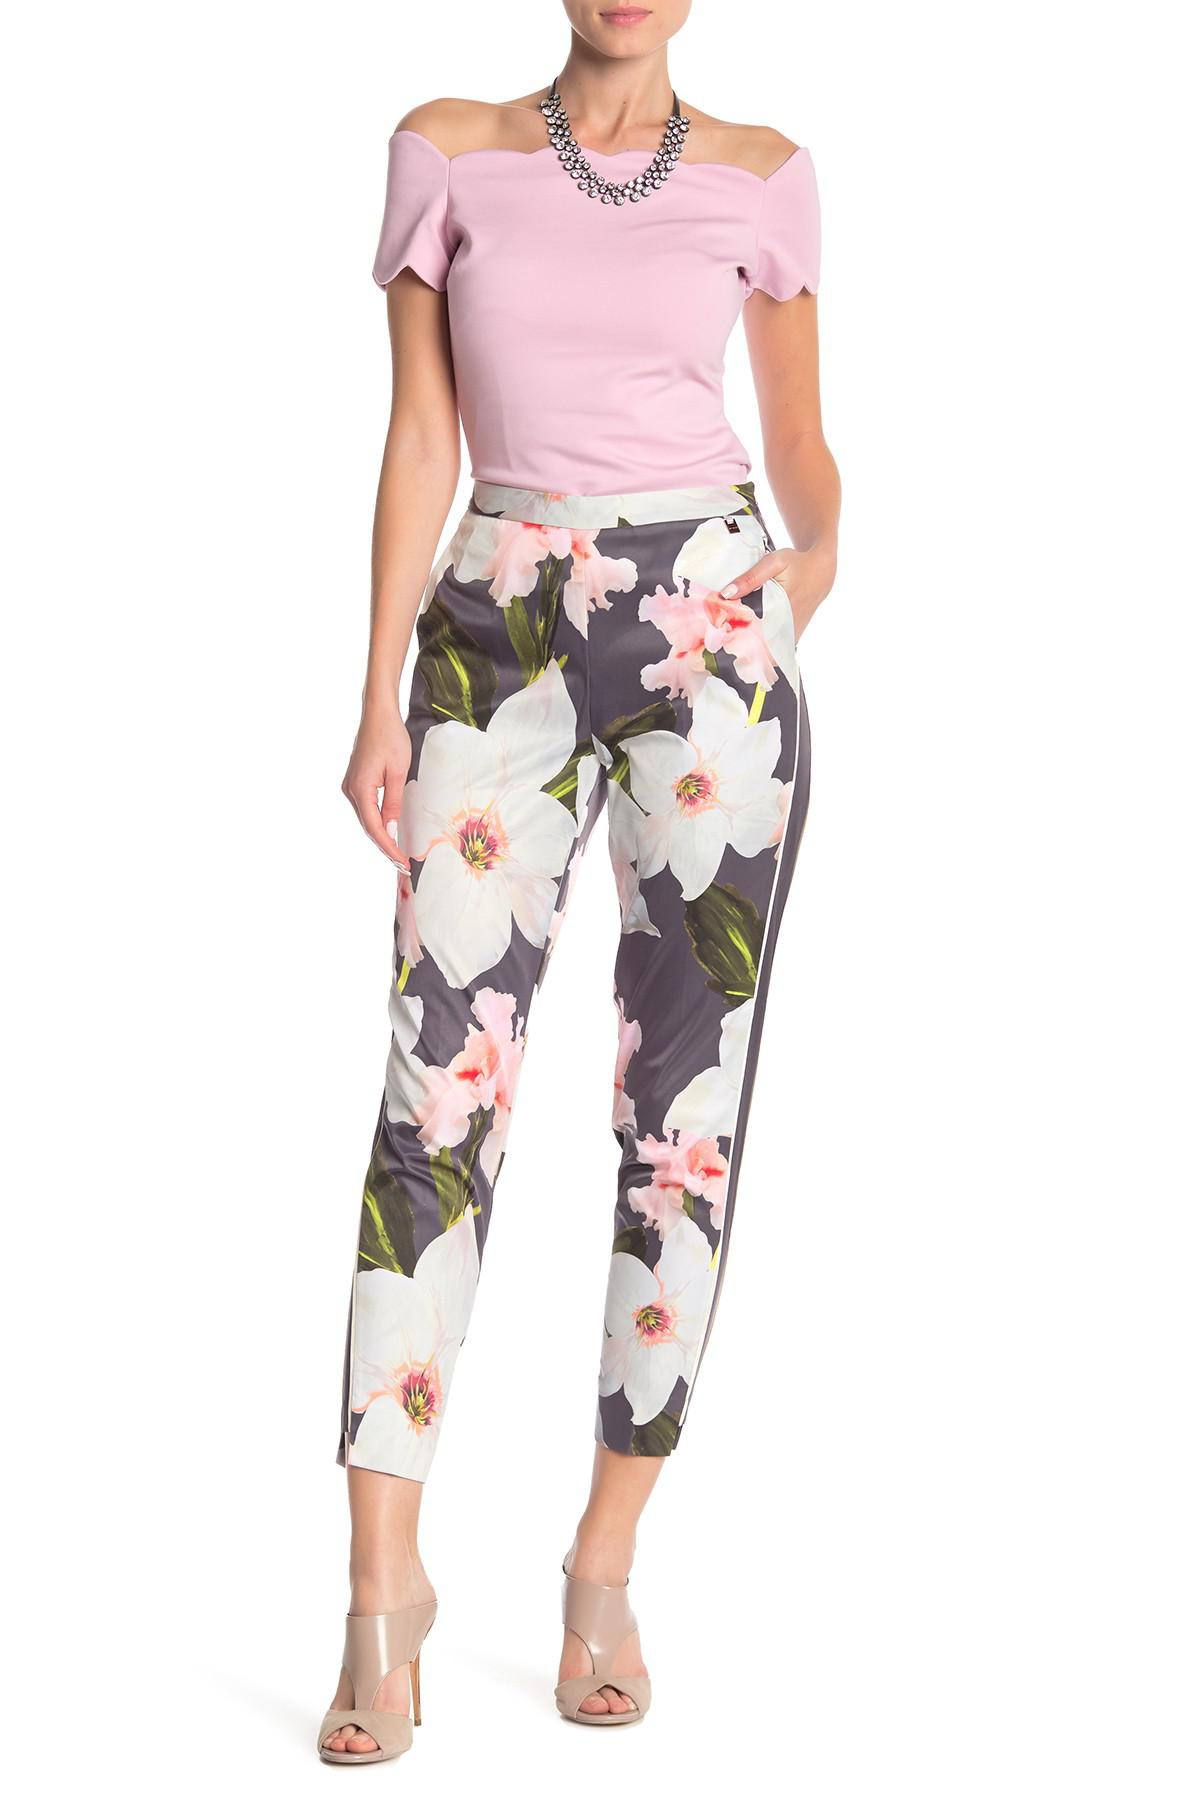 378c1262ad99c Lyst - Ted Baker Chatsworth Floral Tapered Trousers in Gray